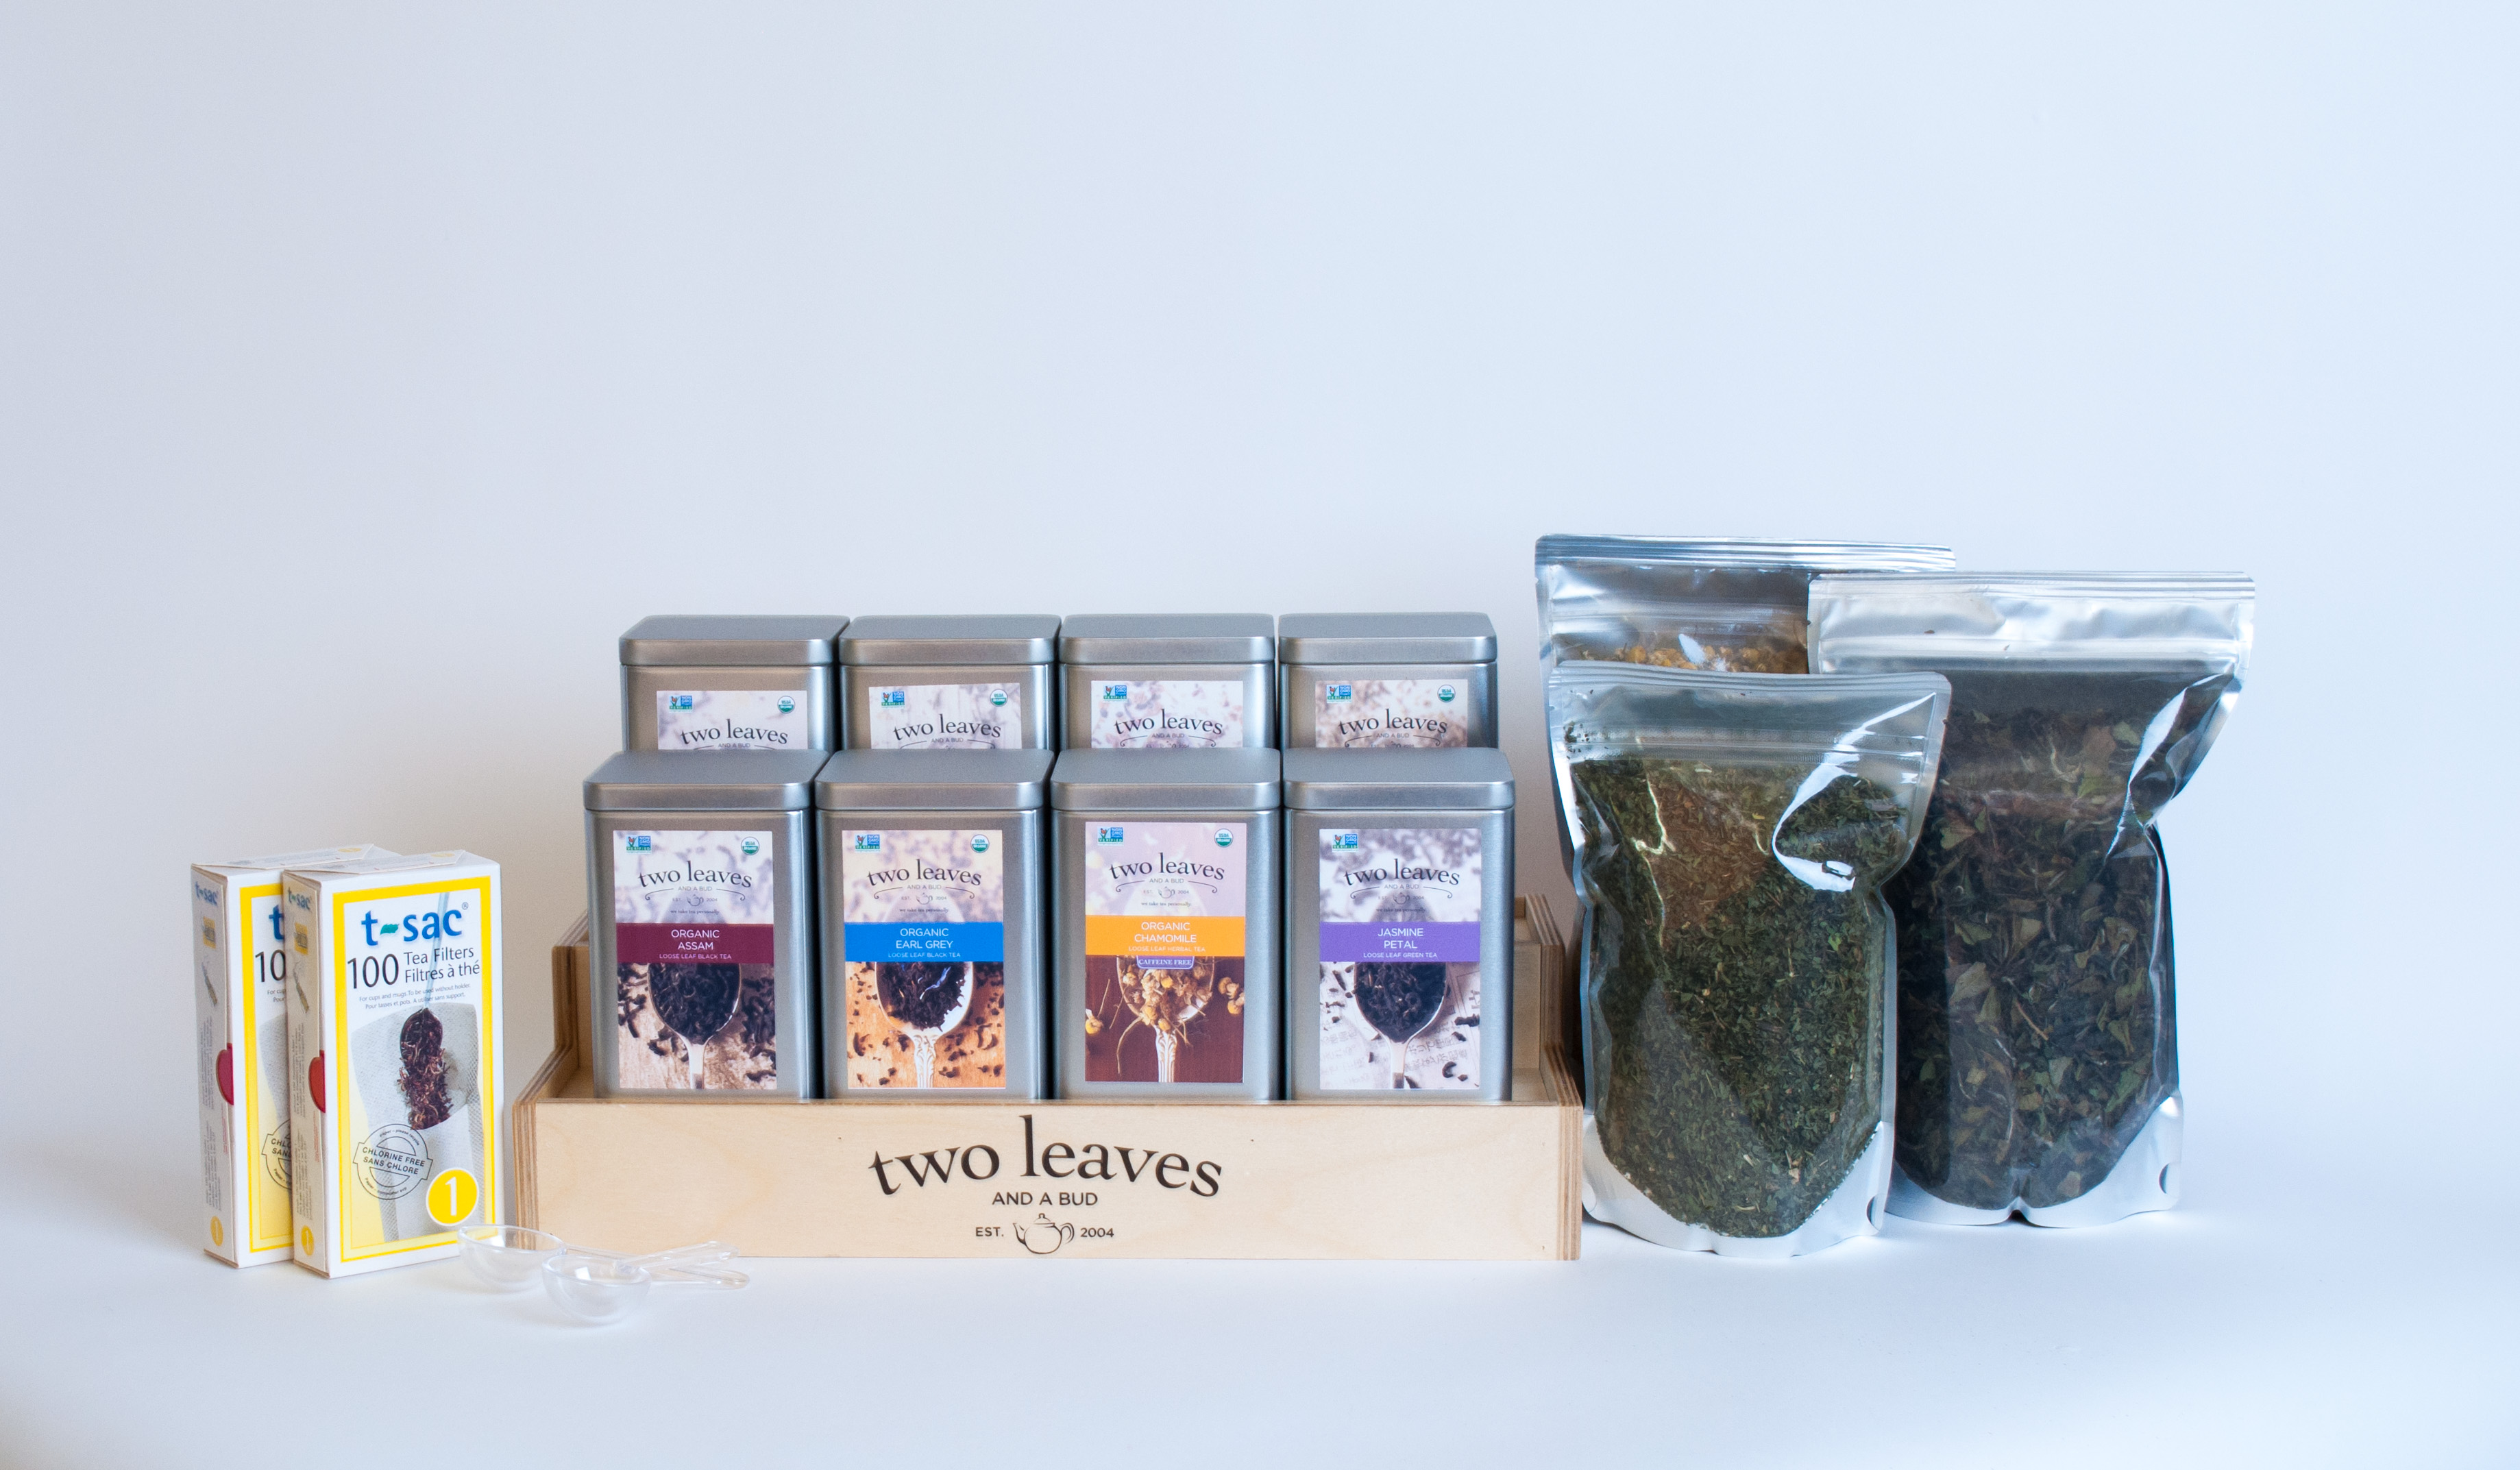 Introducing the Two Leaves and a Bud - Loose Tea Starter Kit at Barista Pro Shop